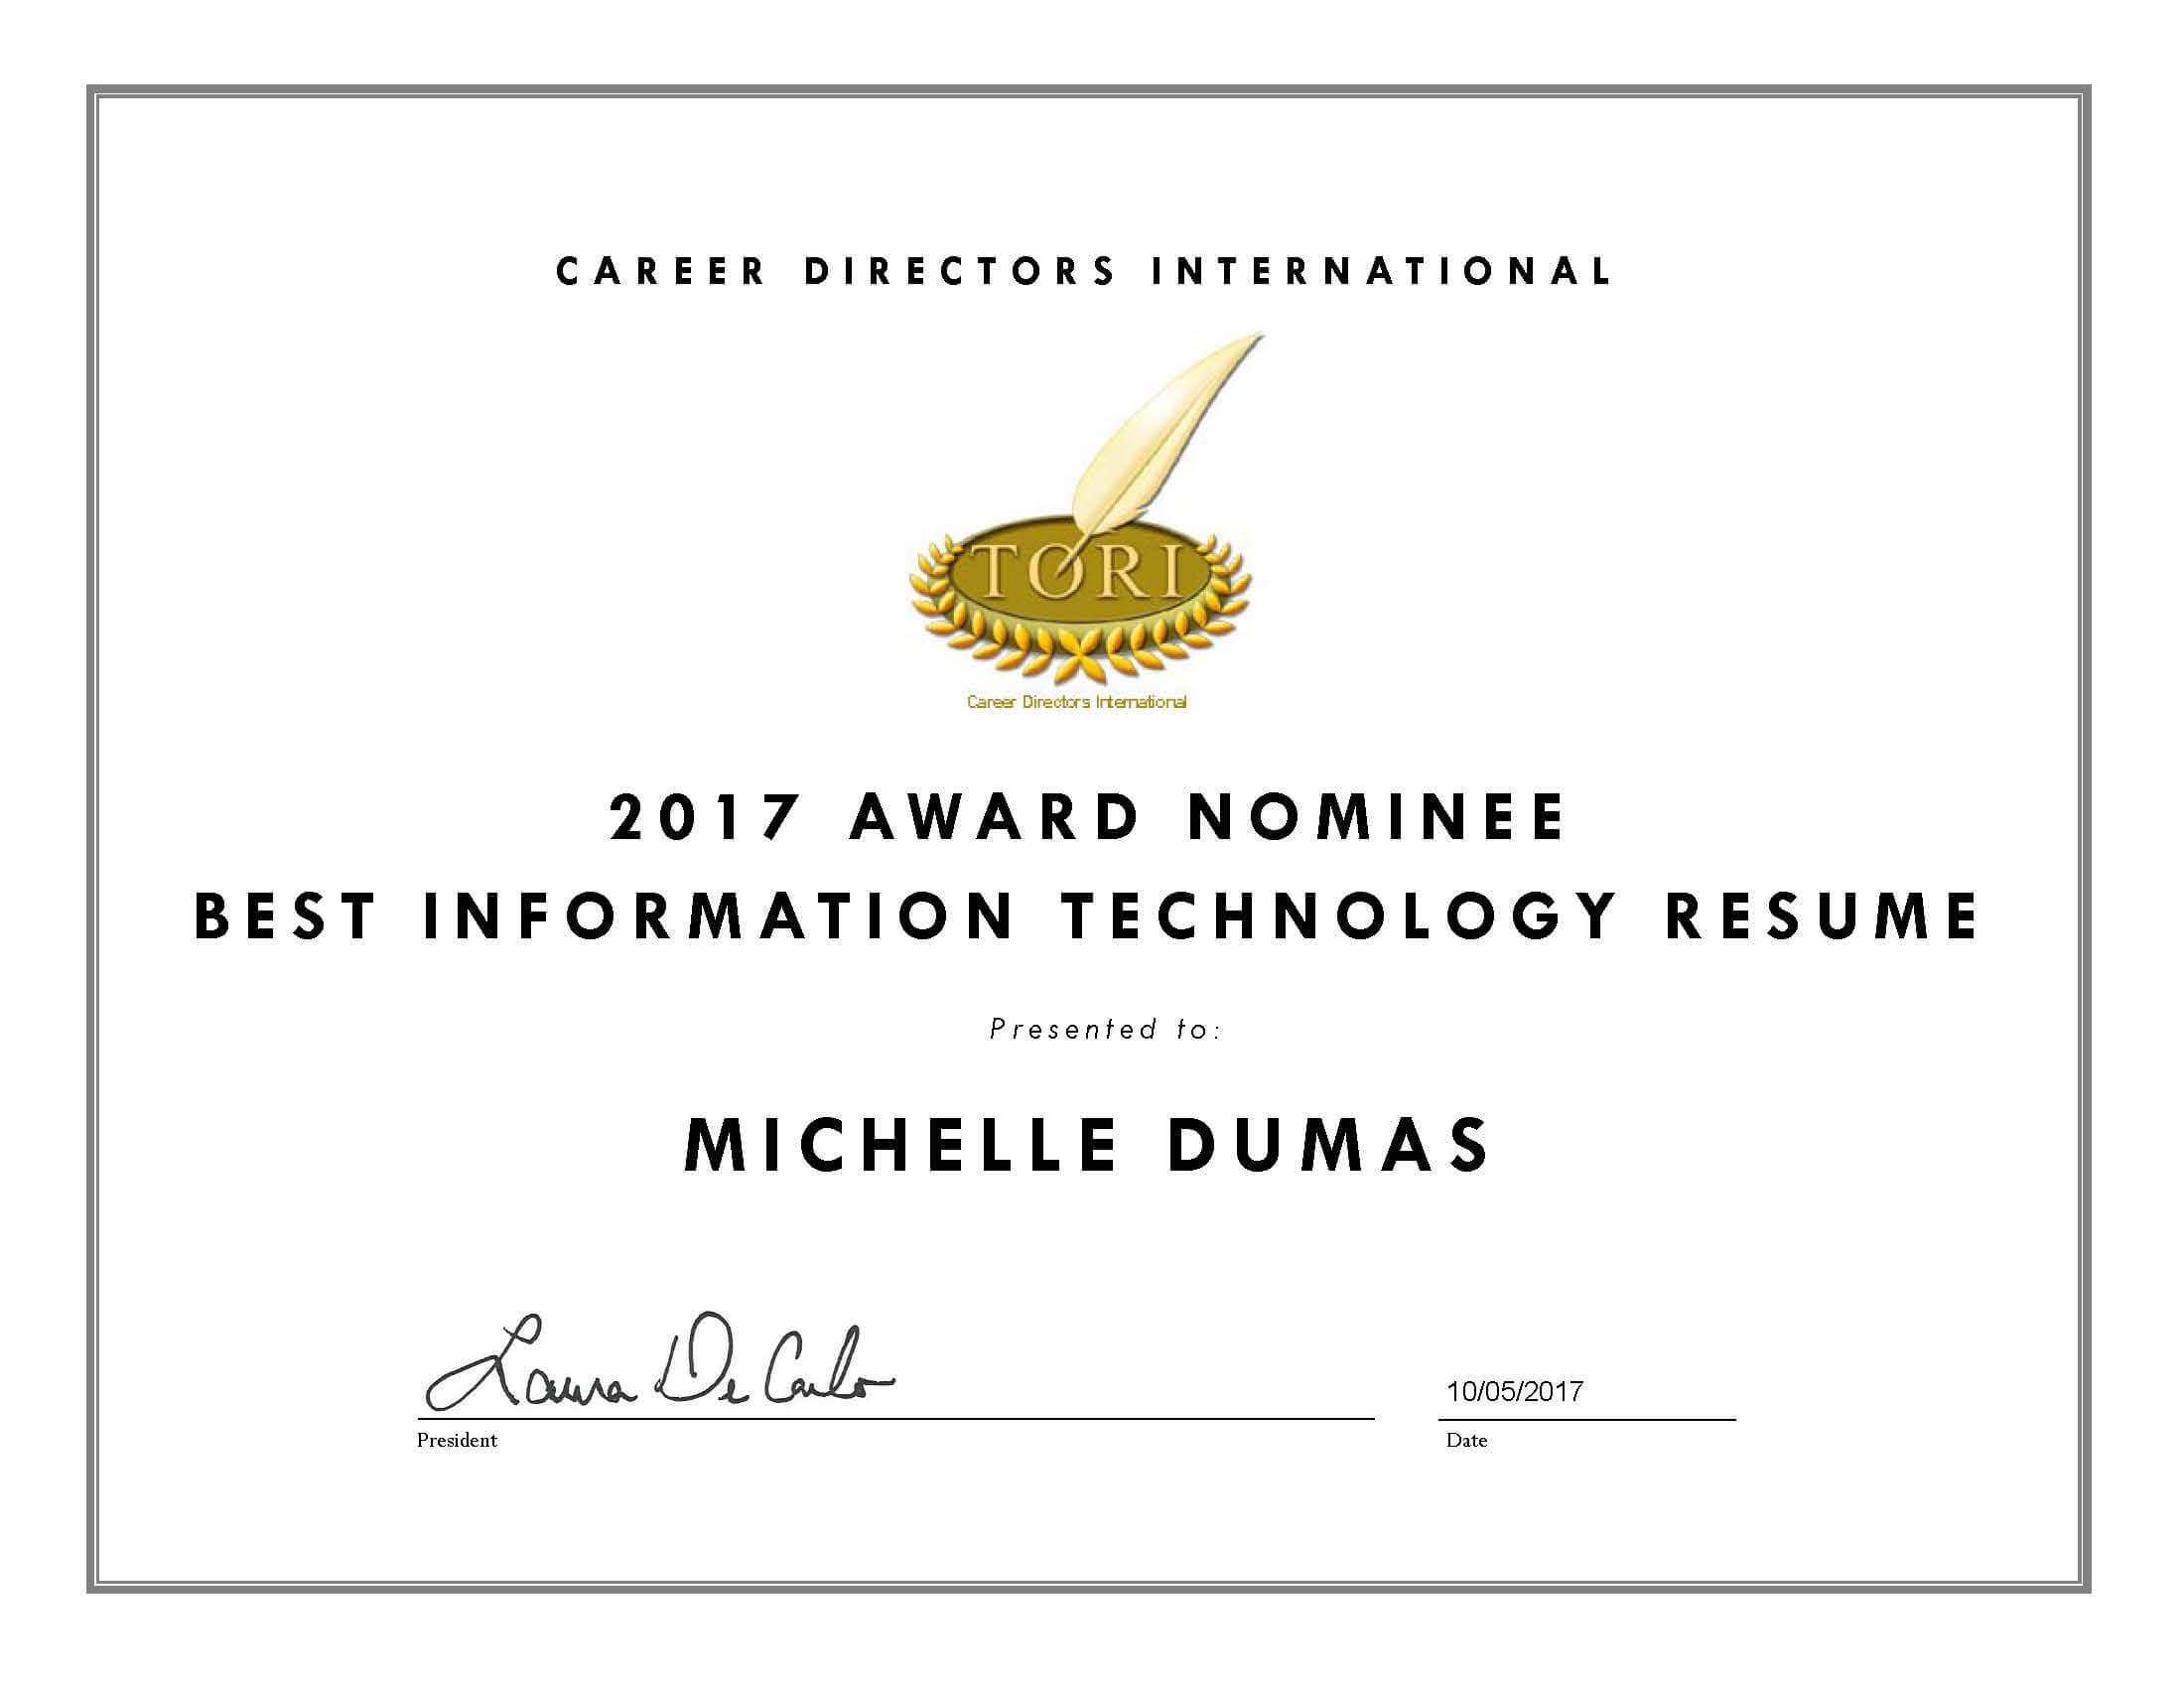 Michelle Dumas TORI Awards Nominee, Best Information Technology Resume 2017